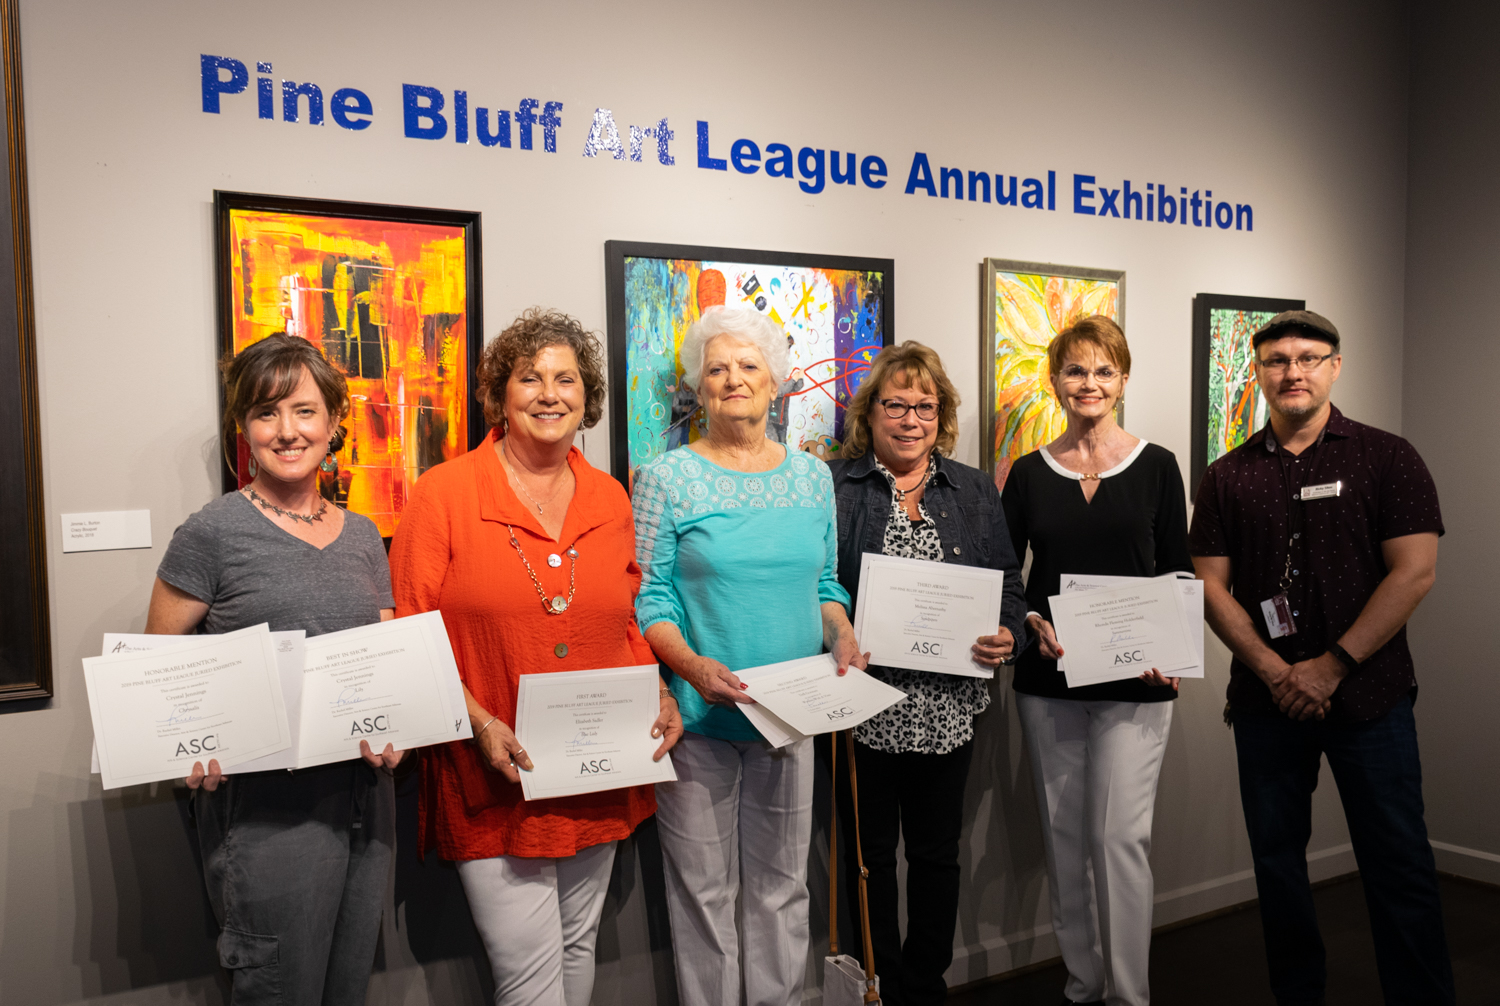 The winners of the 2019 Pine Bluff Art League Annual Exhibition are (from left) Crystal Jennings (Best in Show and Honorable Mention), Elizabeth Sadler (First Place), Dell Gorman (Second Place), Melissa Abernathy (Third Place), Rhonda Fleming Holderfield (Honorable Mention) and juror Ricky Sikes. The winners were announced during the exhibition's opening reception Thursday, Aug. 8, 2019, at The Arts & Science Center.